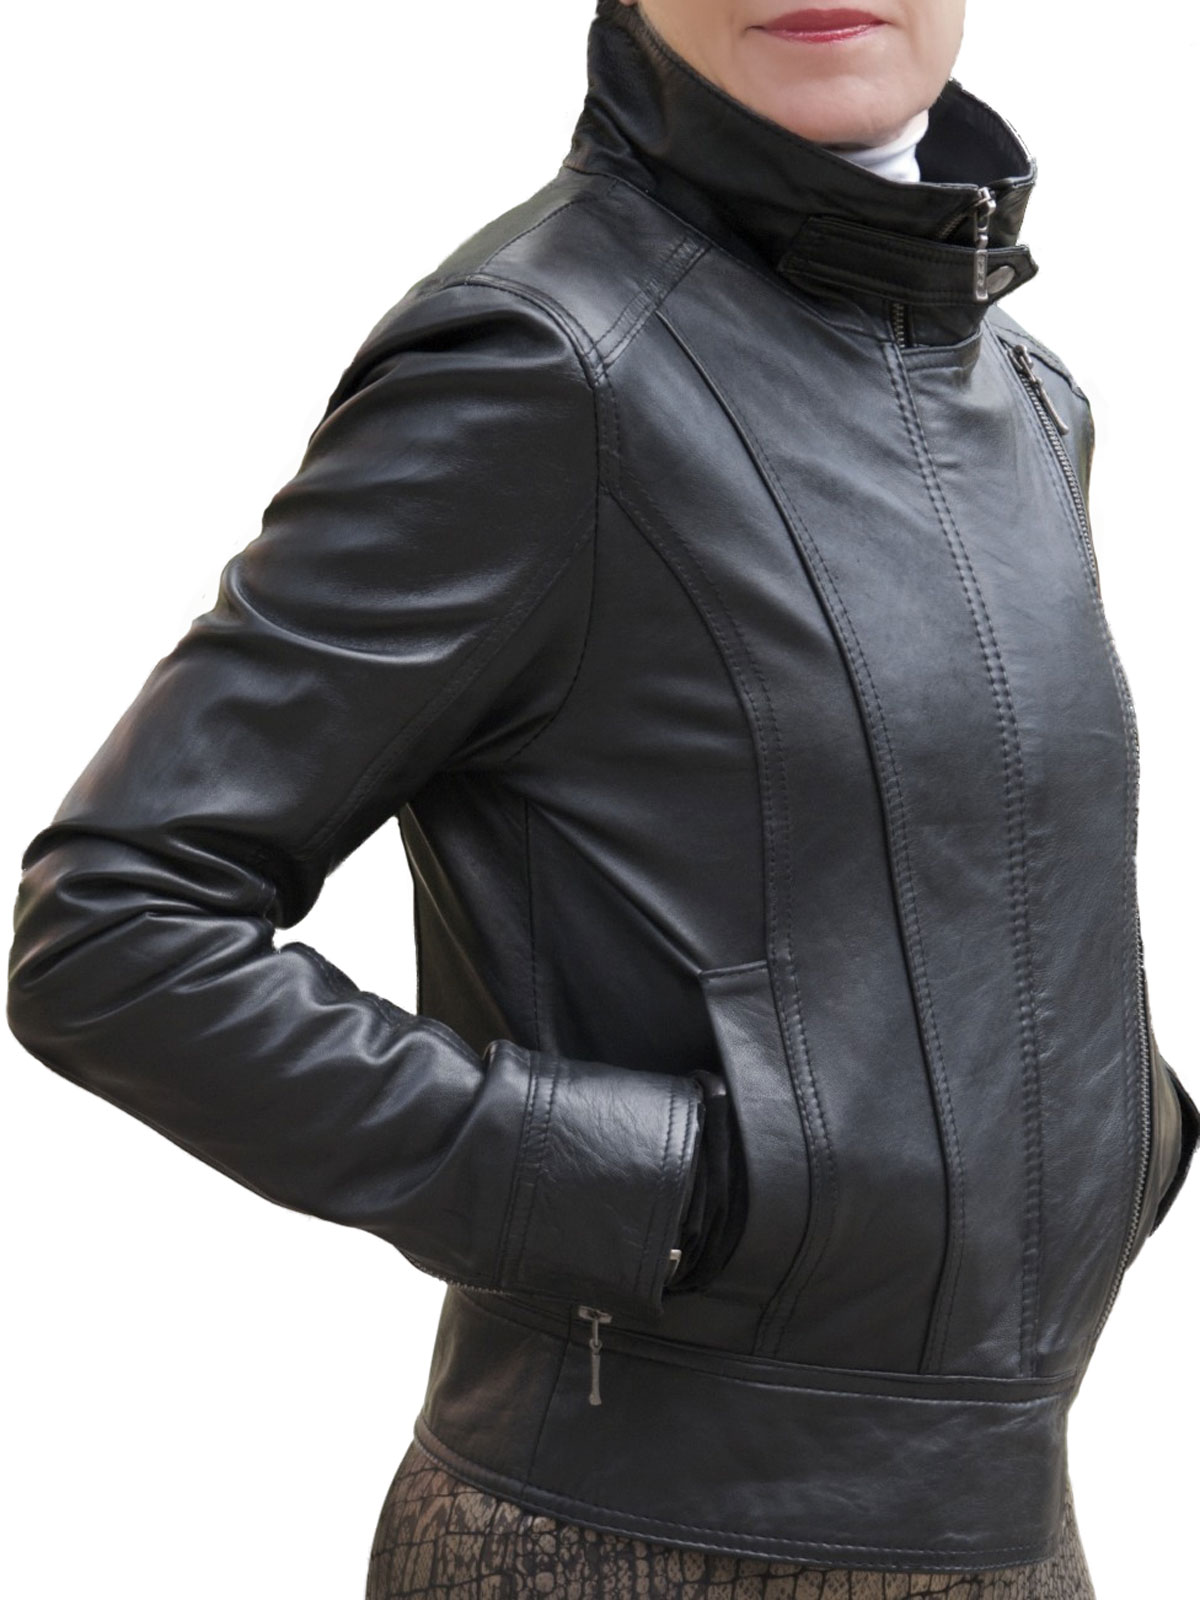 Leather jacket with zippers